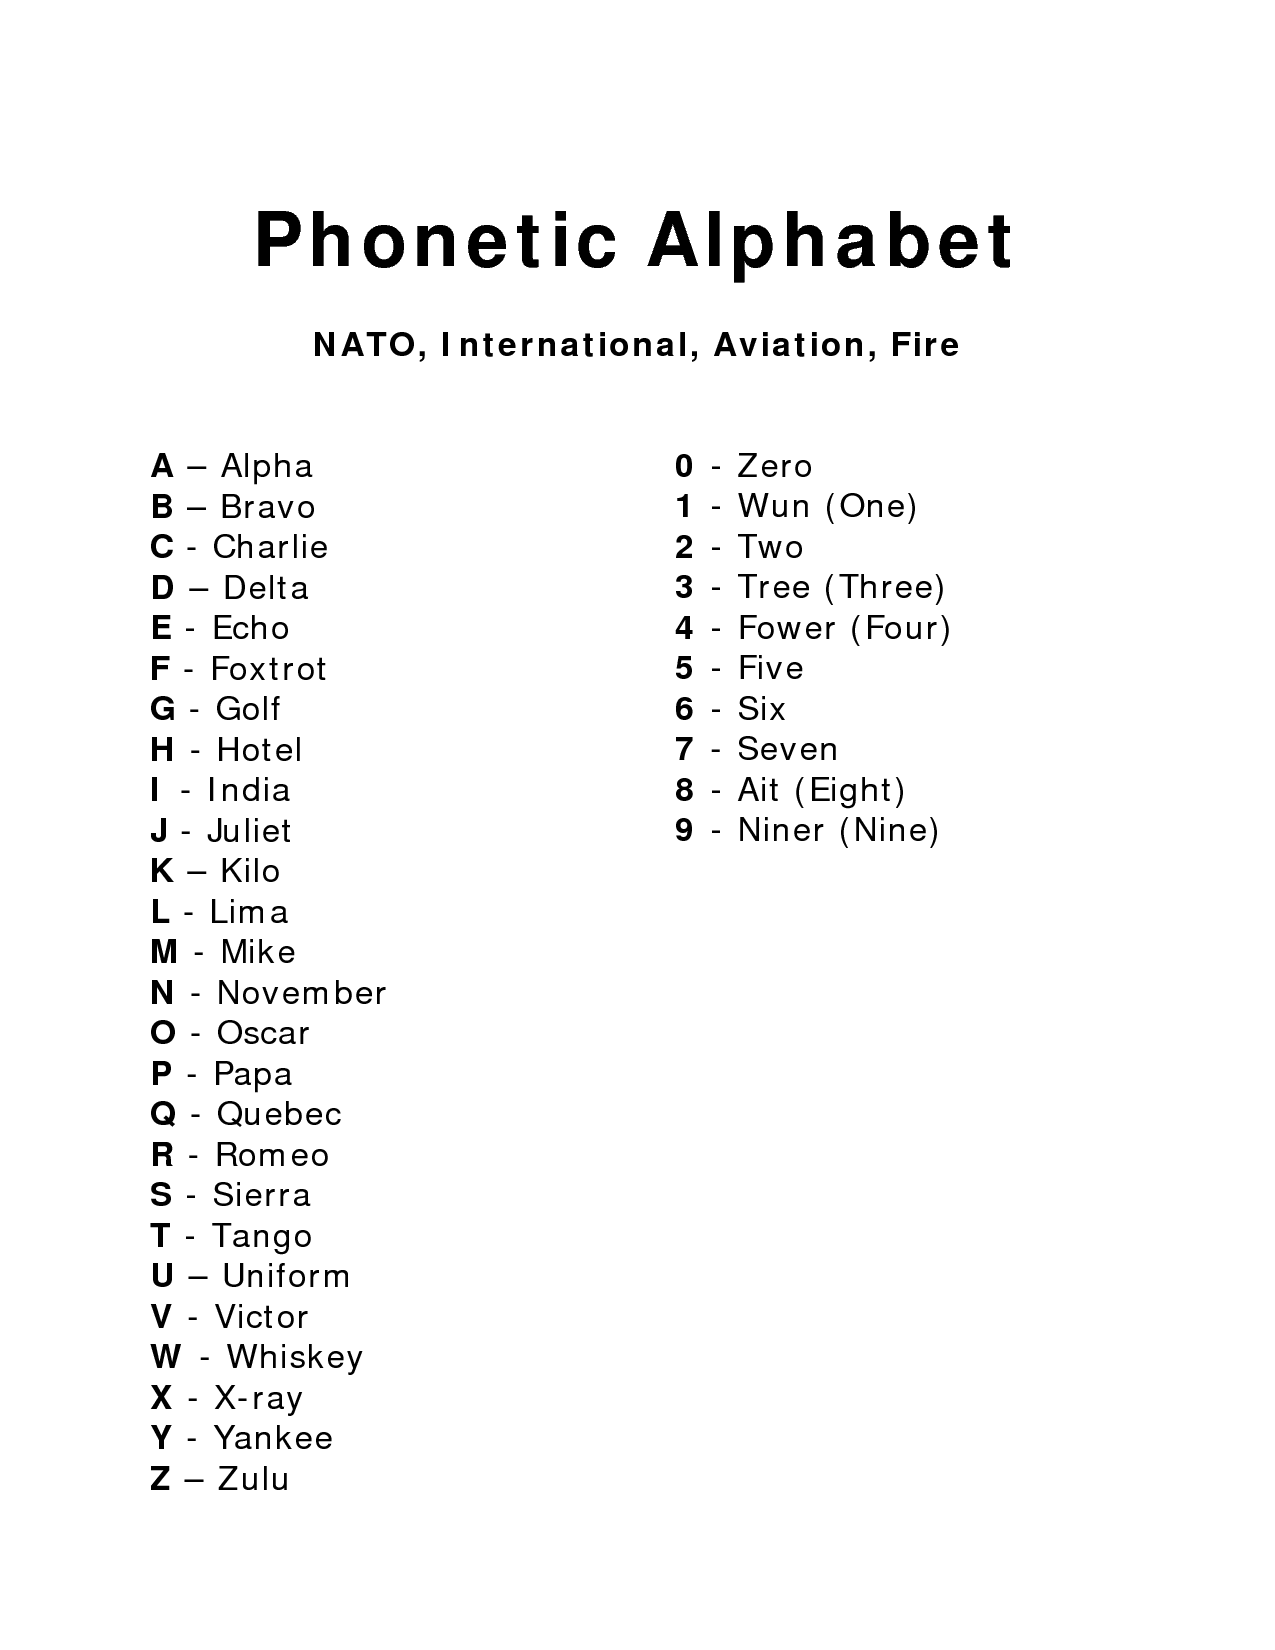 Nato Phonetic Alphabet Pdf Http://hightidefestival.org/nato Phonetic